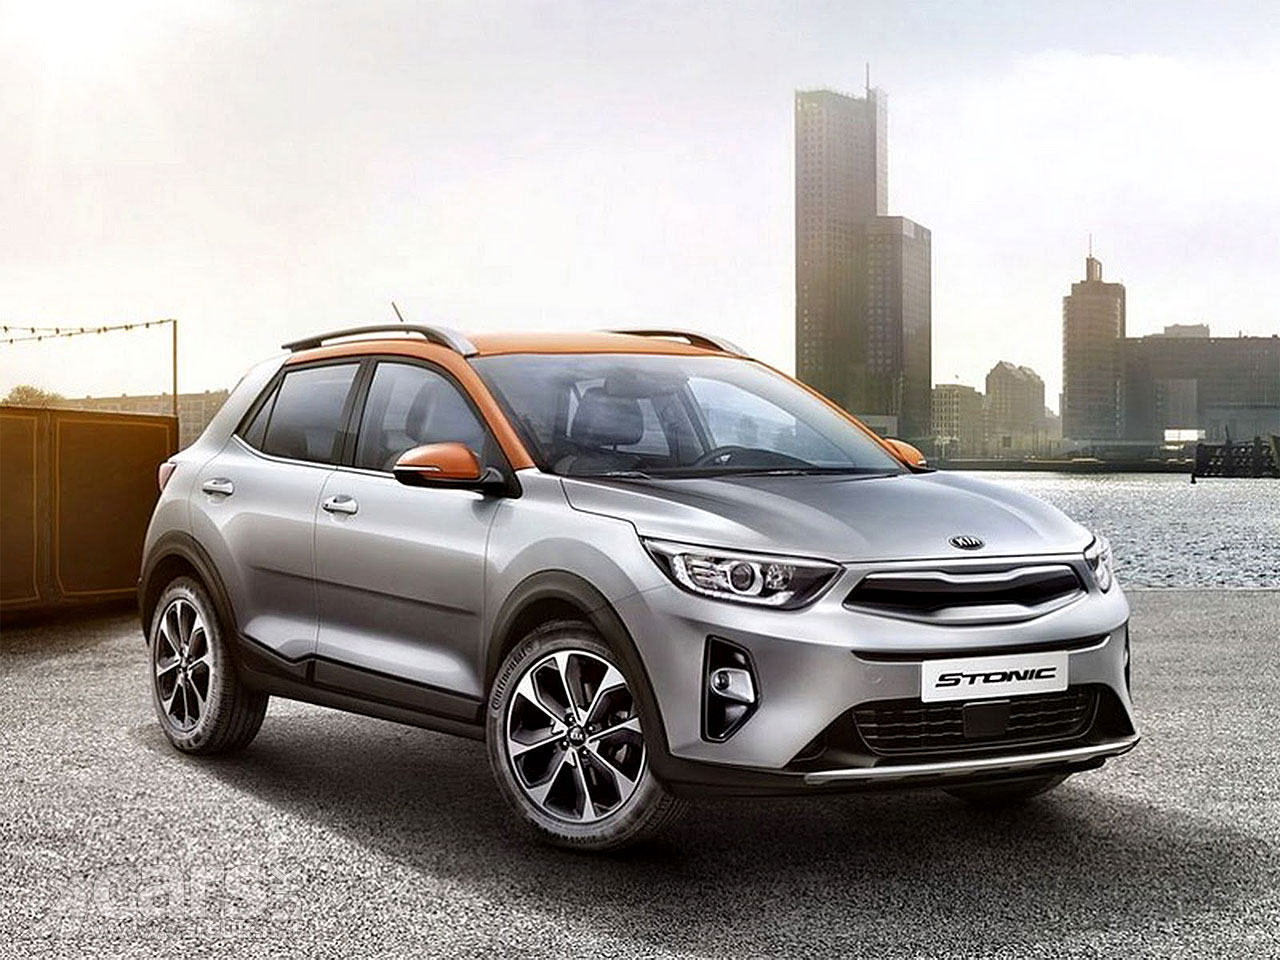 new kia stonic compact suv photos leak early to spoil kia 39 s reveal party cars uk. Black Bedroom Furniture Sets. Home Design Ideas